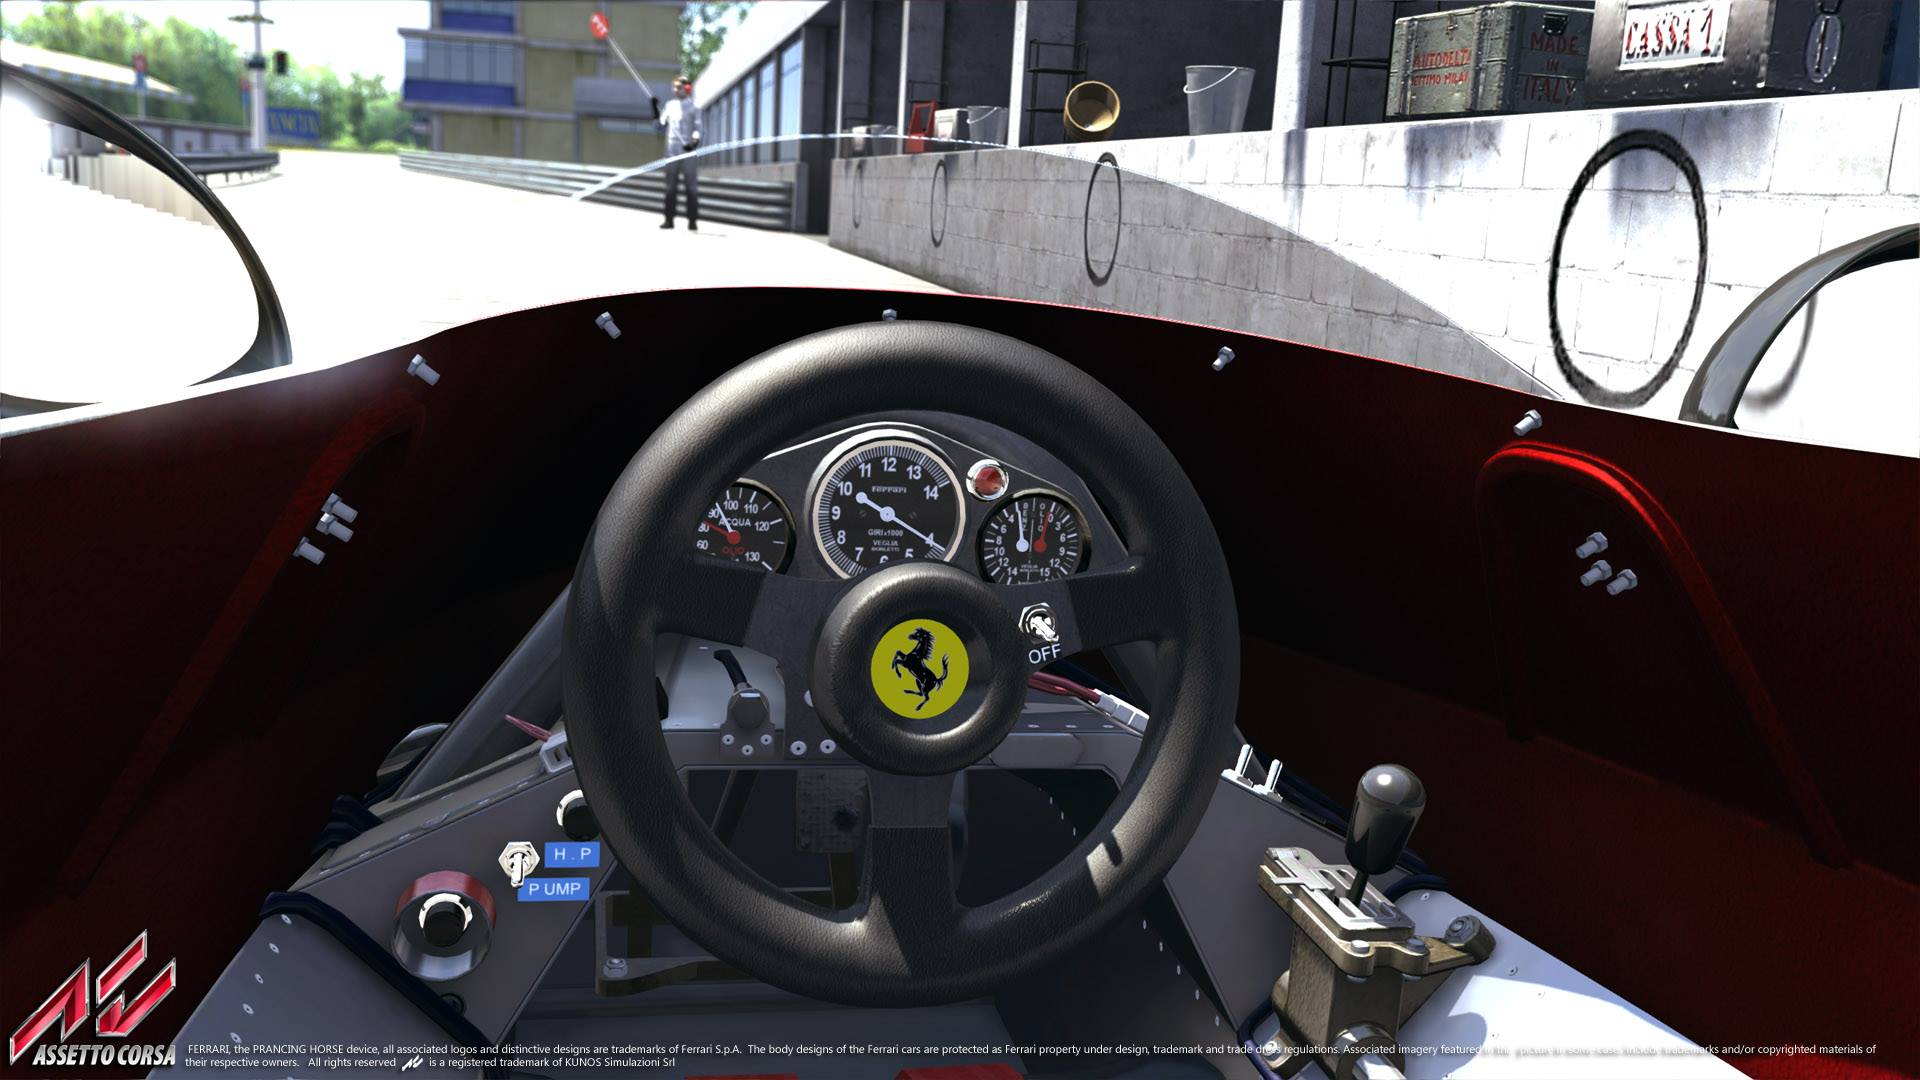 assetto corsa releases early access update 0 8 inside sim racing. Black Bedroom Furniture Sets. Home Design Ideas